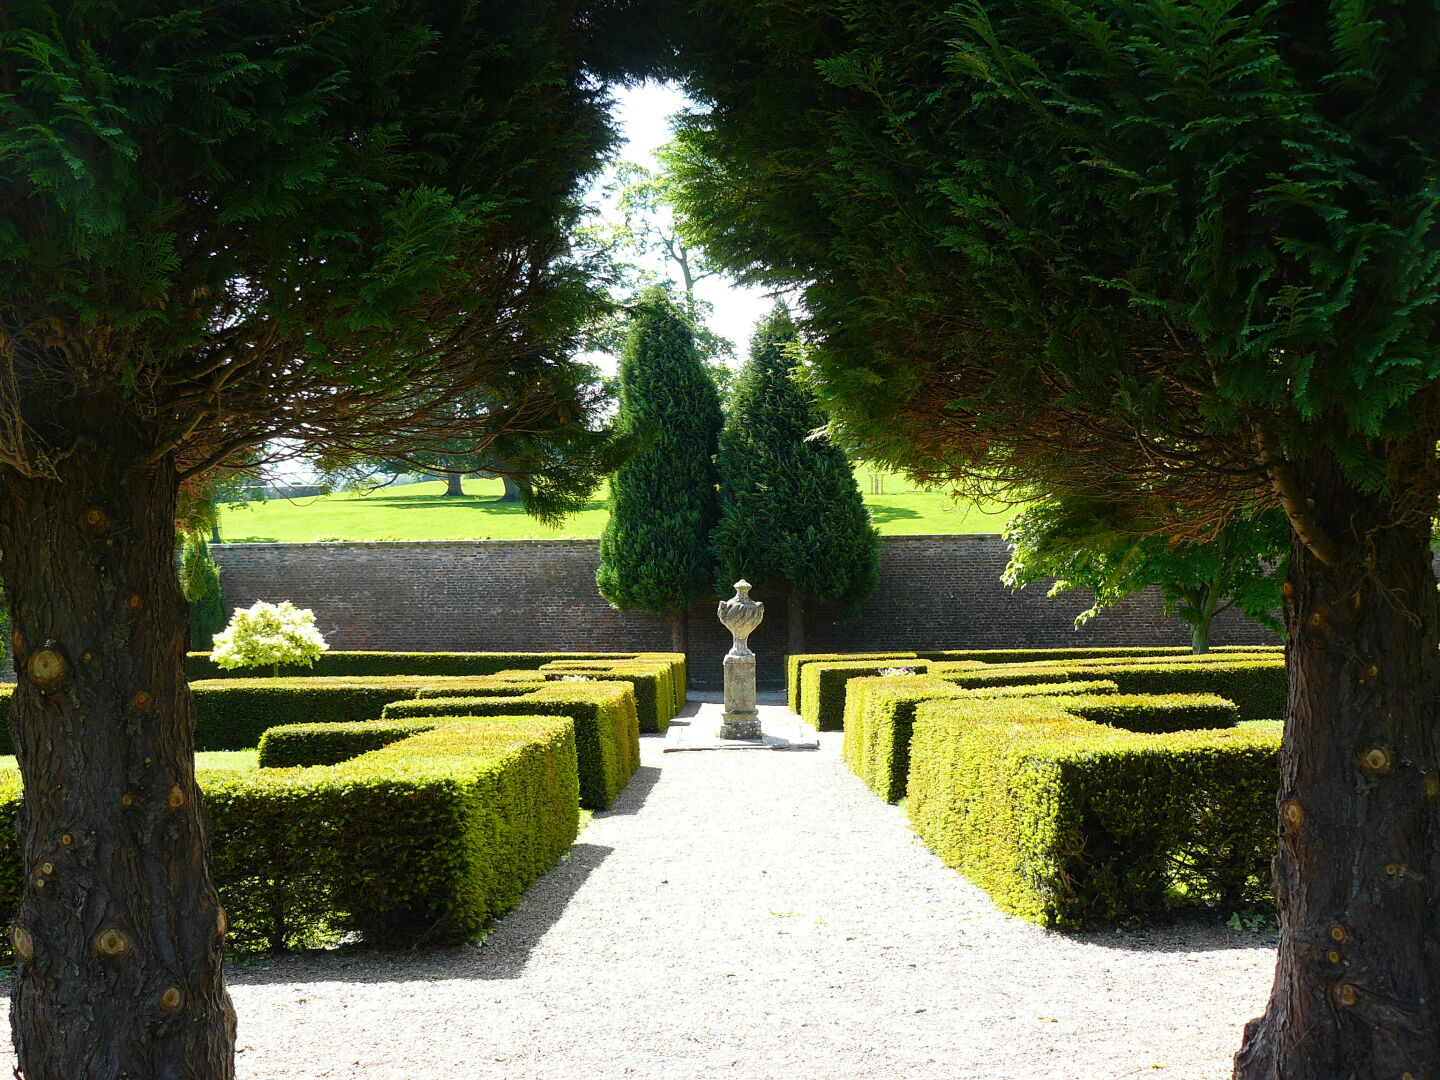 Raby Castle has nice walled gardens in its park.